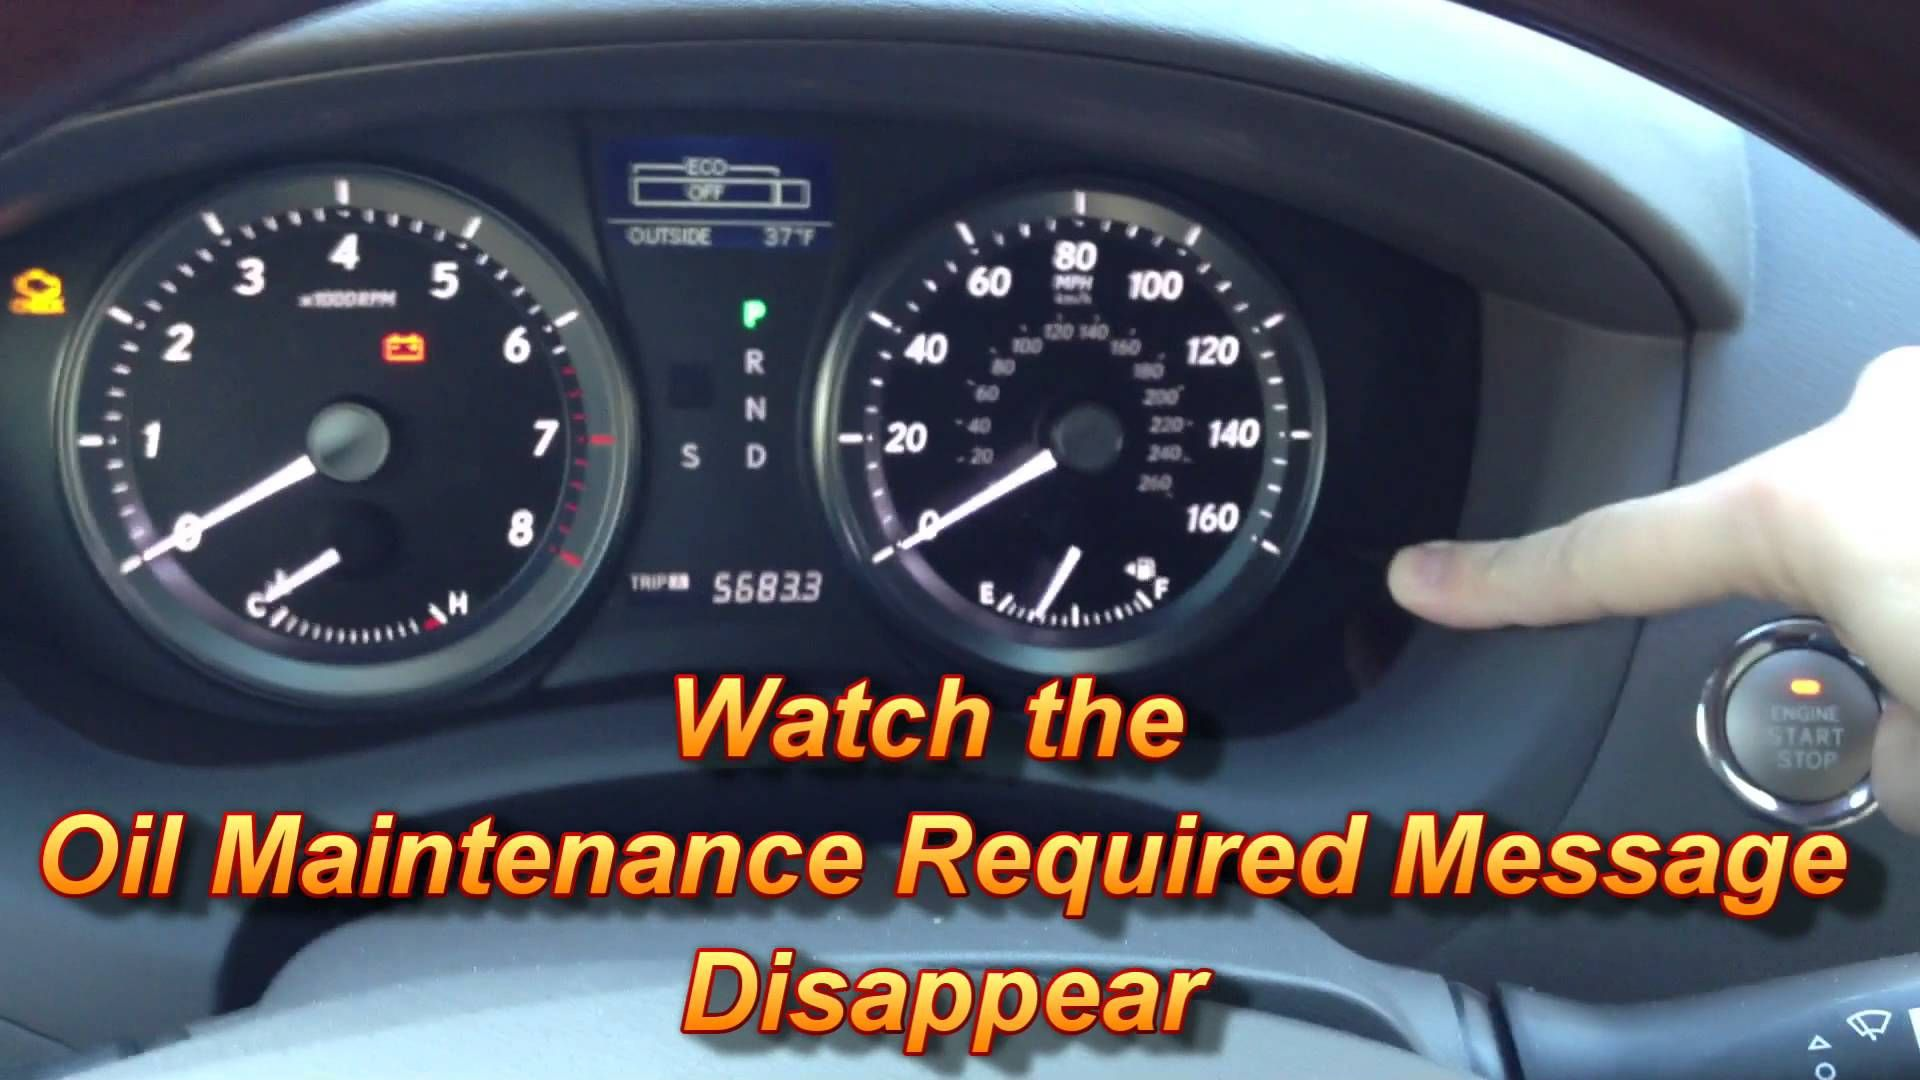 How To Reset Vsc Light On Lexus Gs 350 Decoratingspecial Com